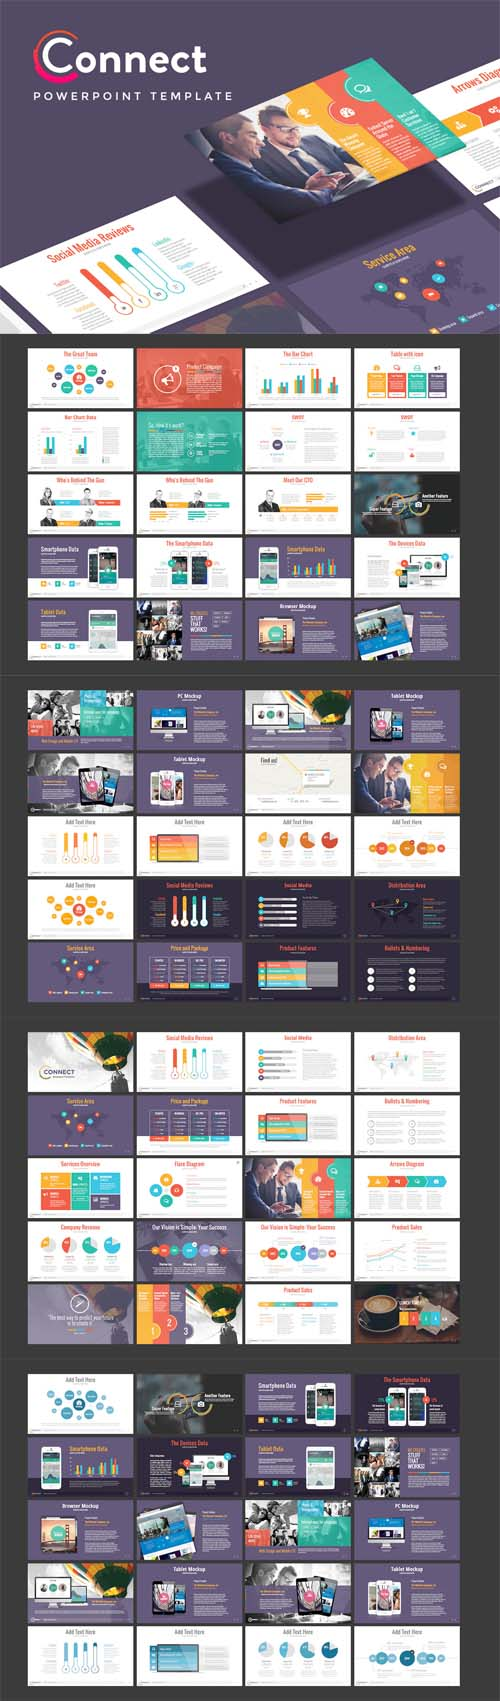 CONNECT - Marketing Powerpoint Template